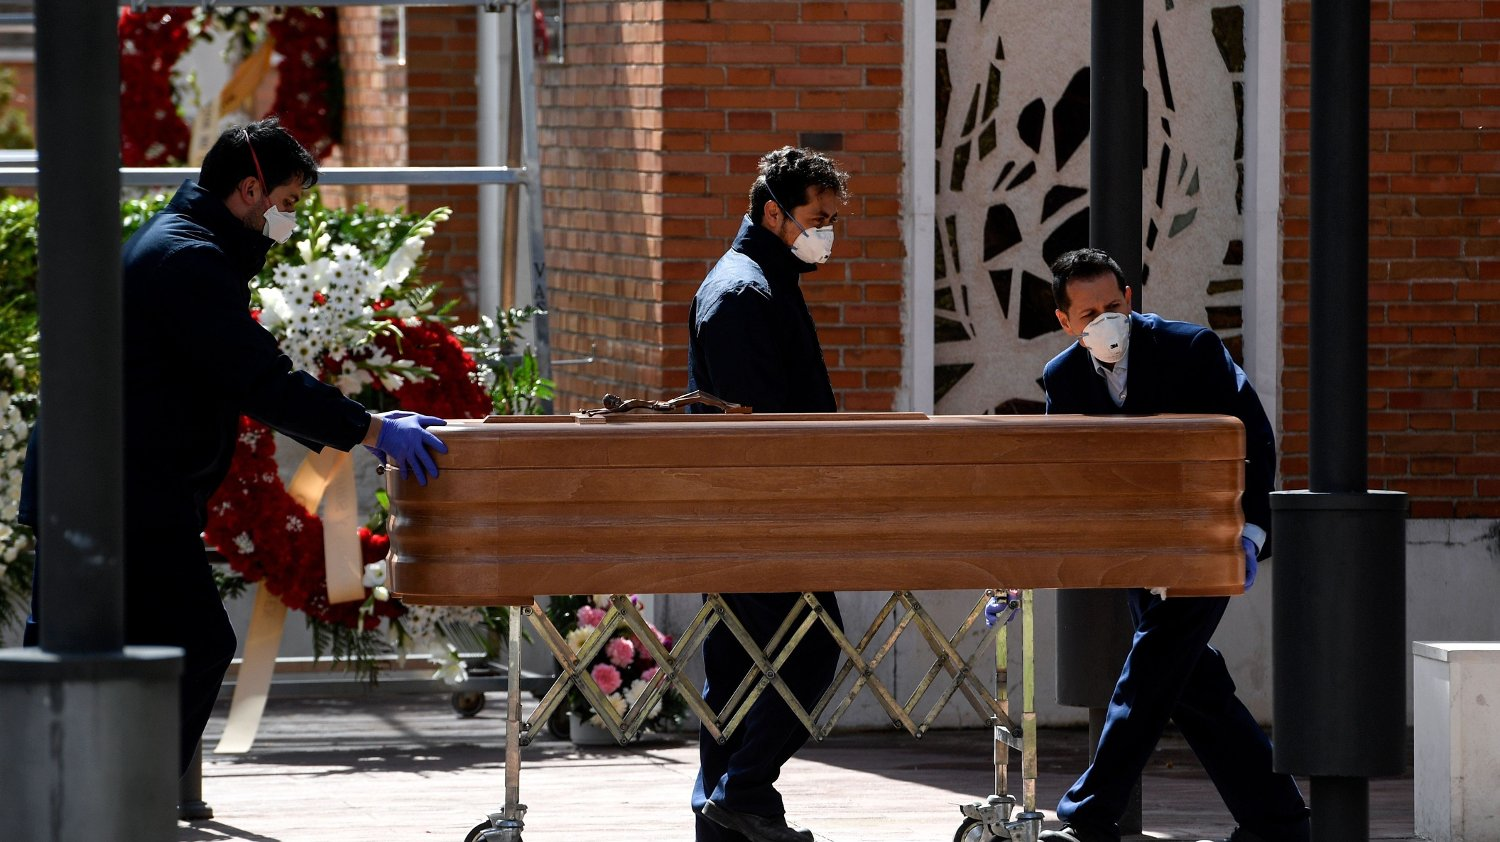 Mortuary employees wearing face masks wheel a coffin into the crematorium of La Almudena cemetery in Madrid on March 24, 2020 during the funeral of a COVID-19 coronavirus victim. - Spain has been one of the worst-hit countries, logging the third-highest number of deaths with the latest figures showing a toll of 2,696.